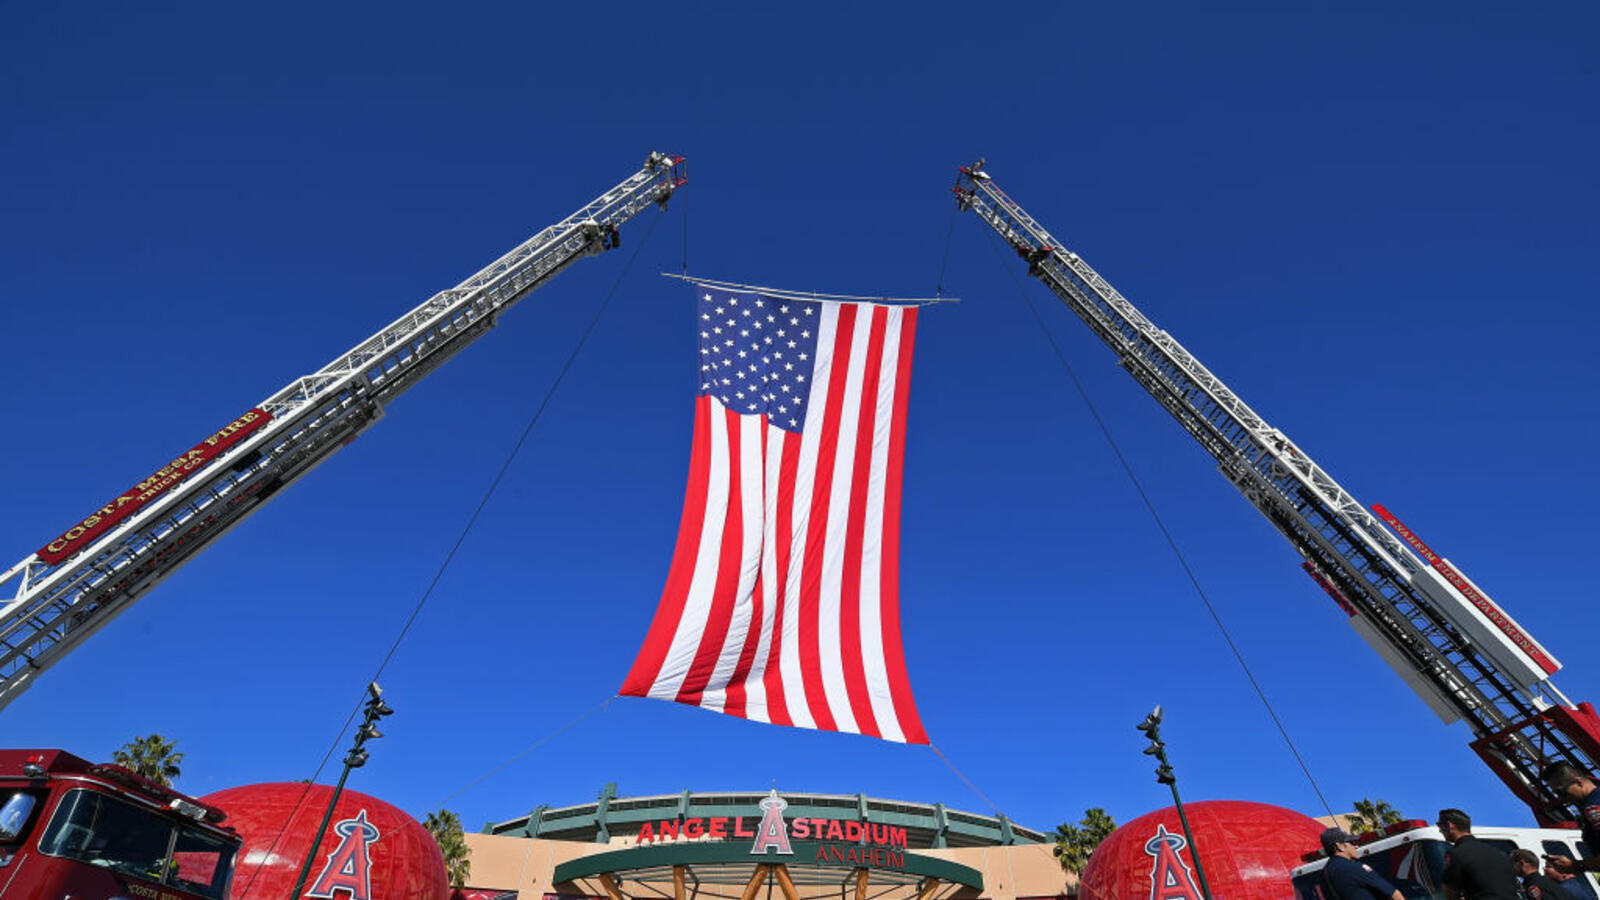 Mandy's Thu Blog: Mike Rosen Has Something to Say about The Flag